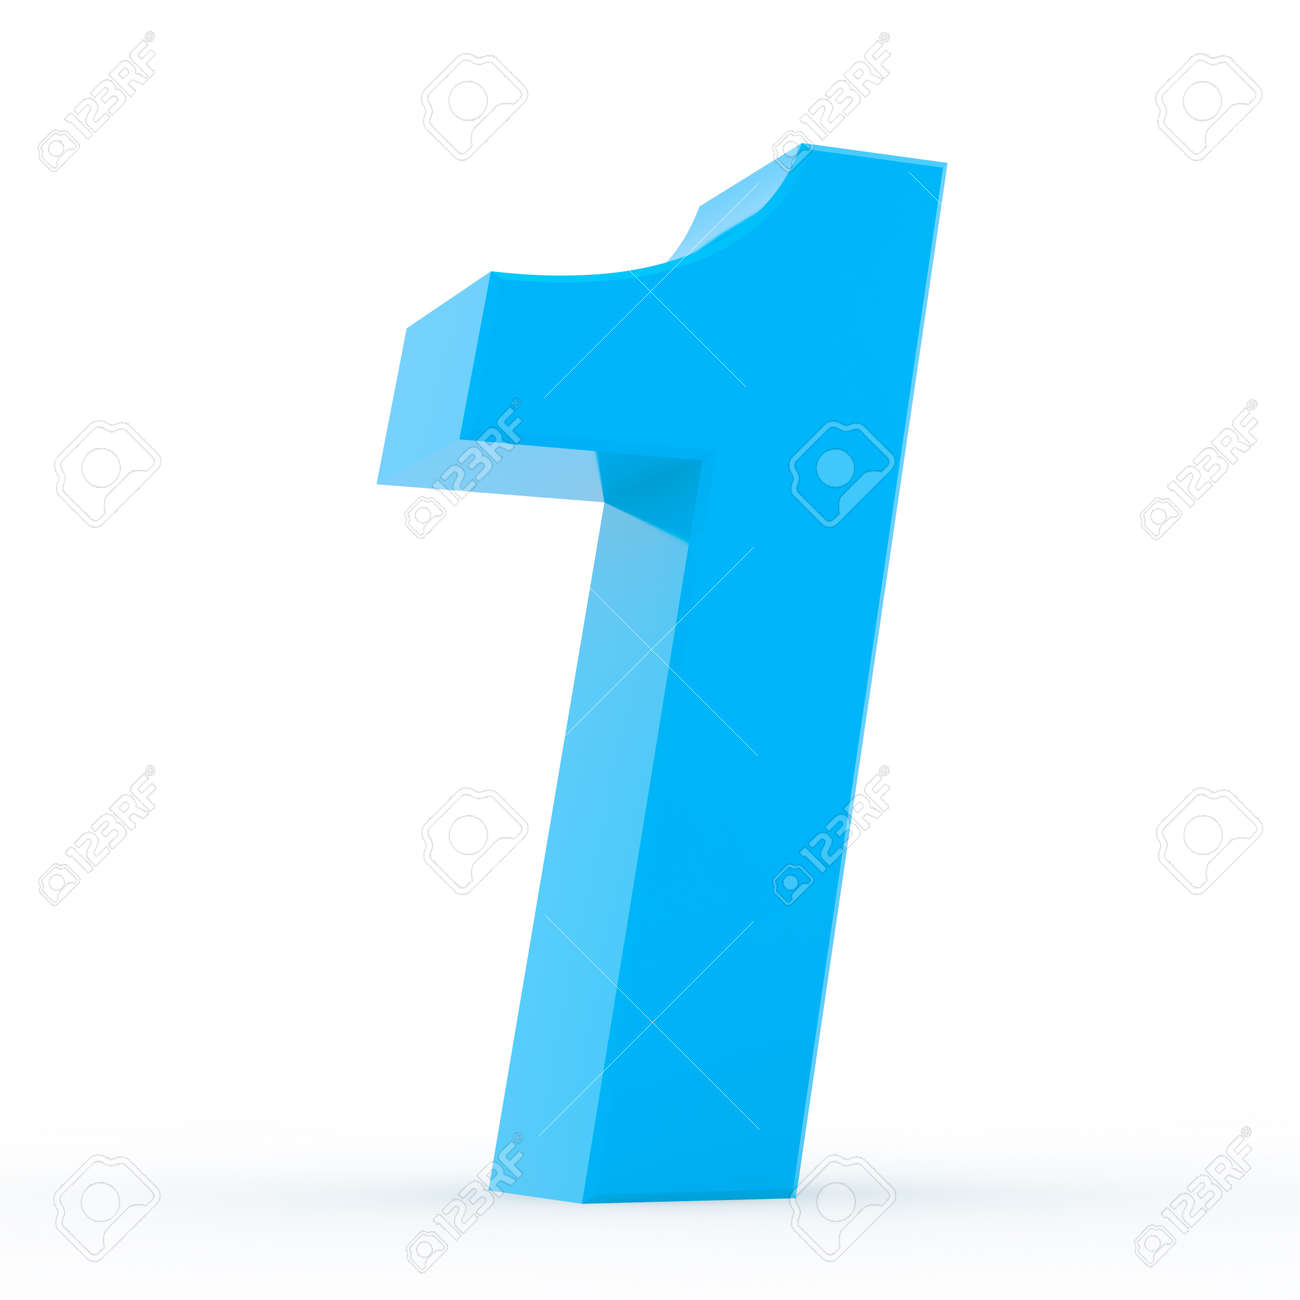 Number 1 blue collection on white background illustration 3D rendering - 131785682